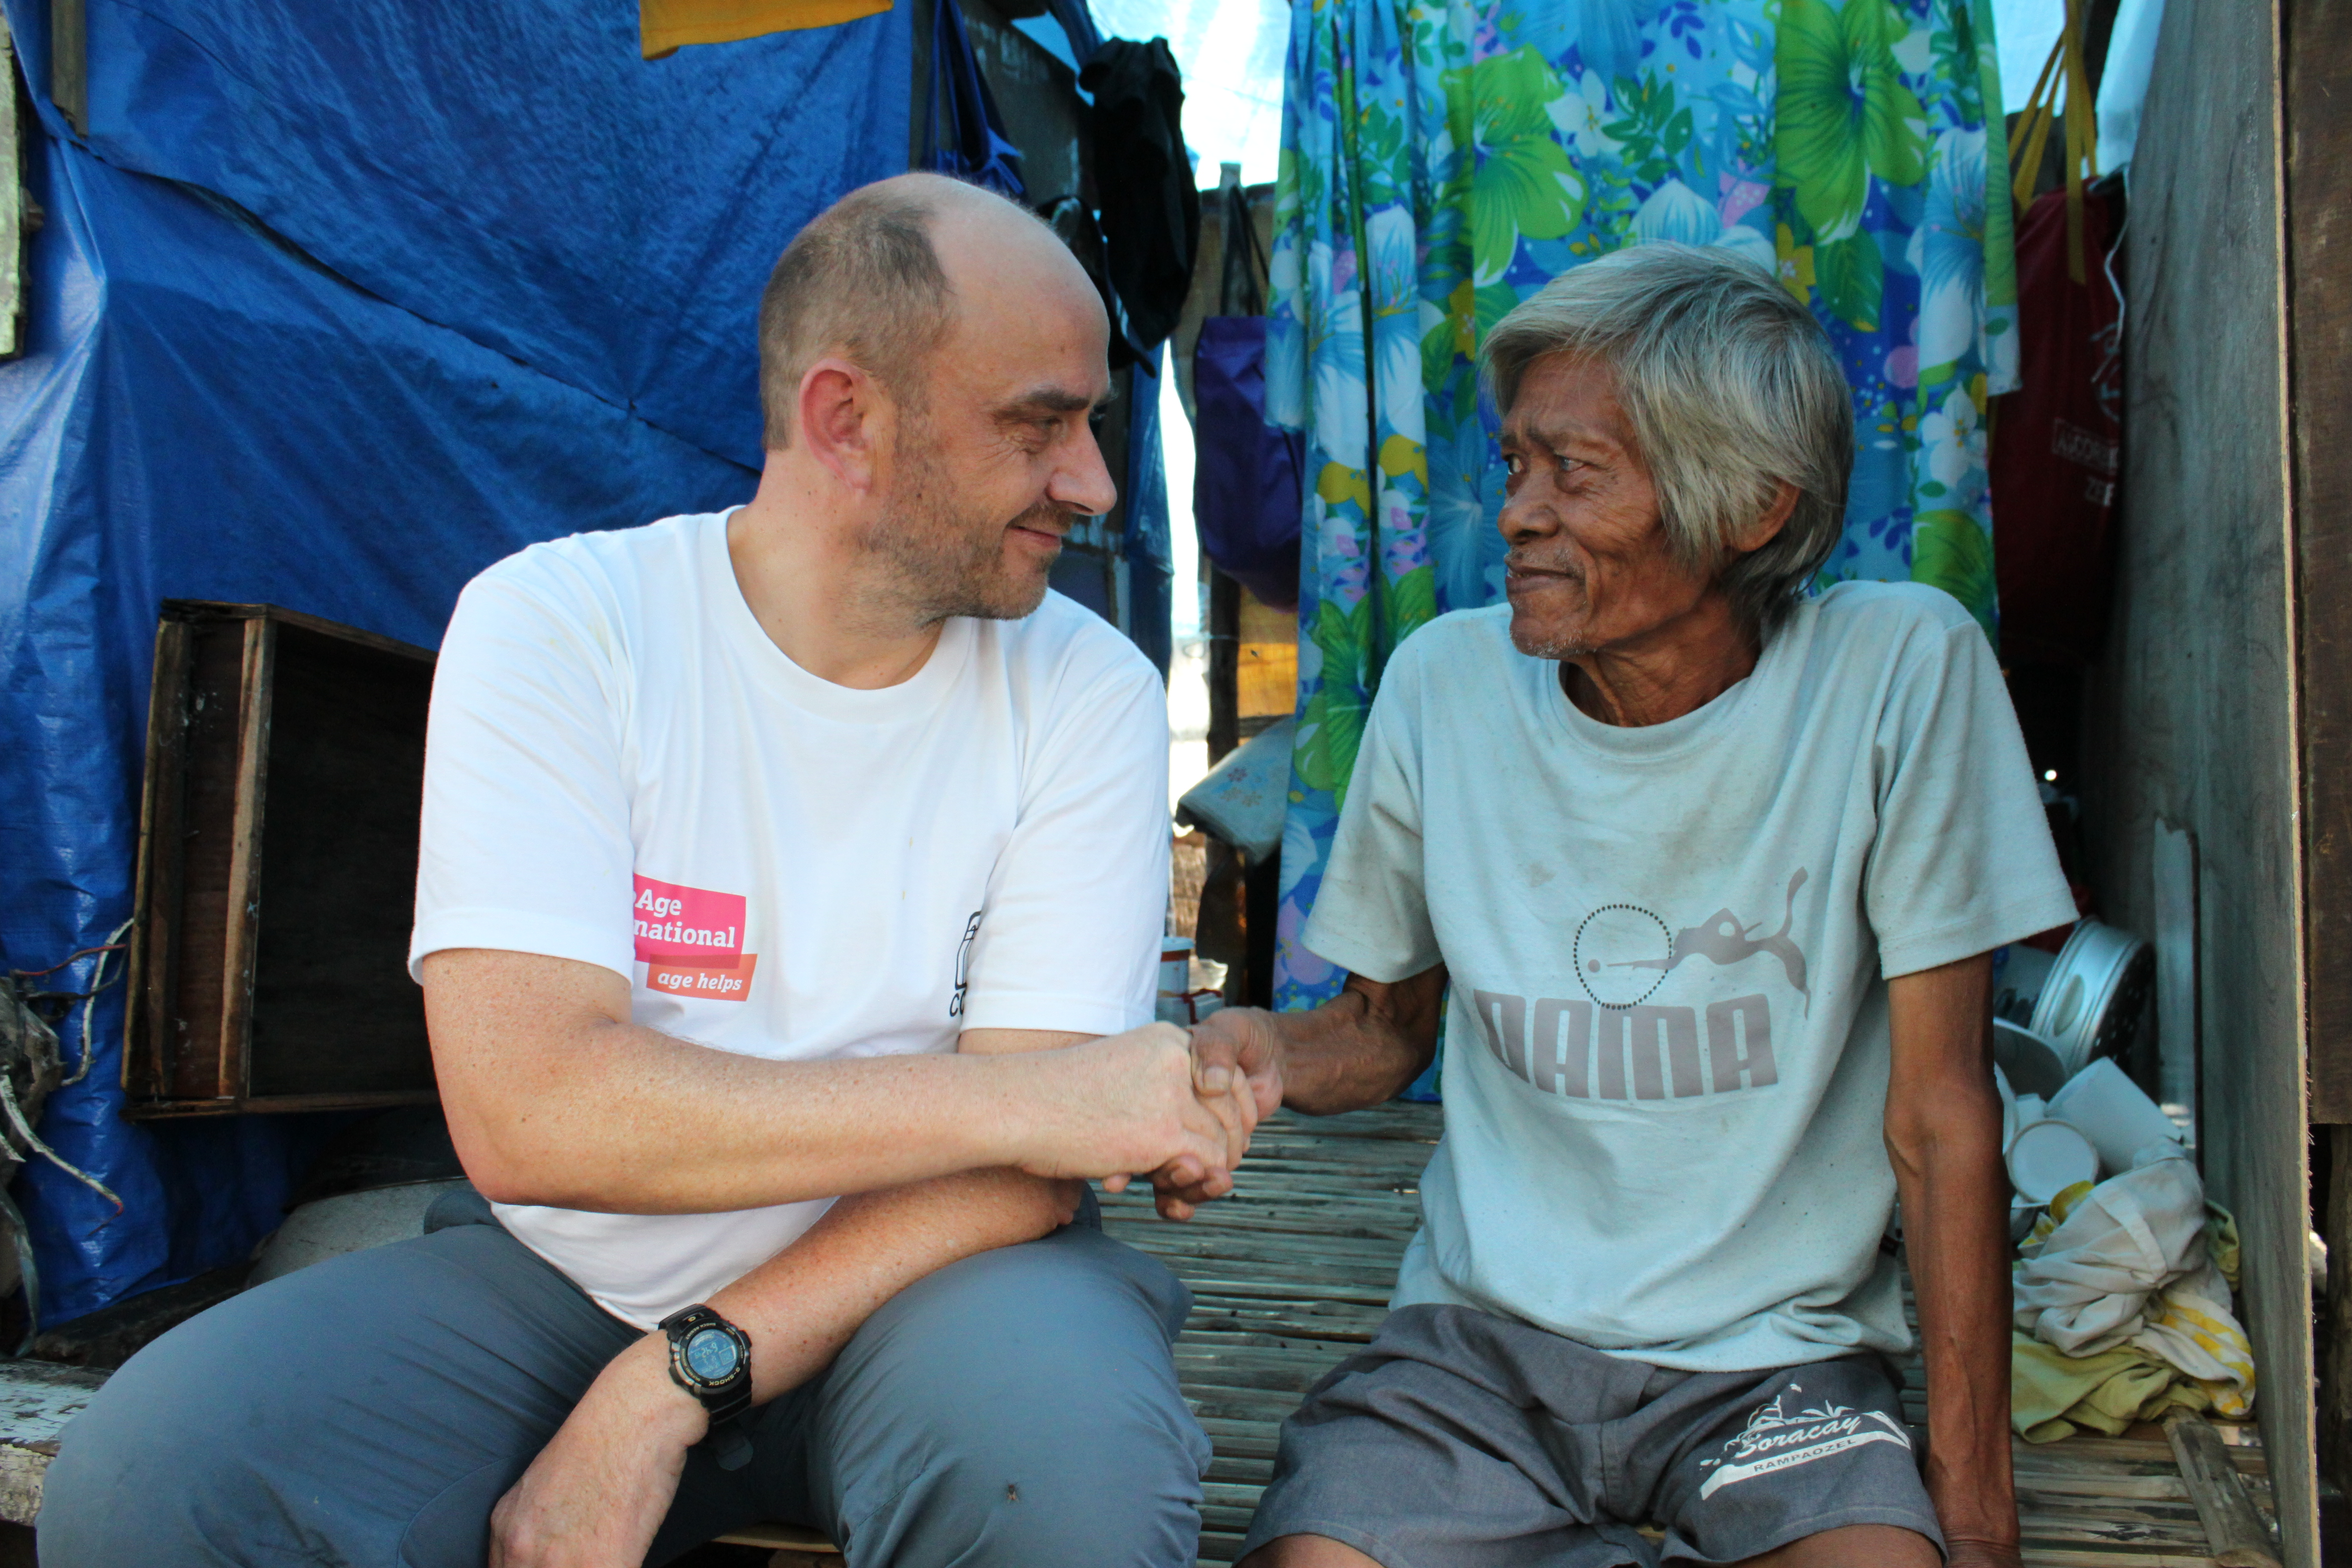 https://circled8.files.wordpress.com/2014/09/toby-porter-chief-executive-of-helpage-international-shakes-hands-with-a-villager-in-the-philippines-c2a9-joselito-dela-cruz-helpage-international.jpg